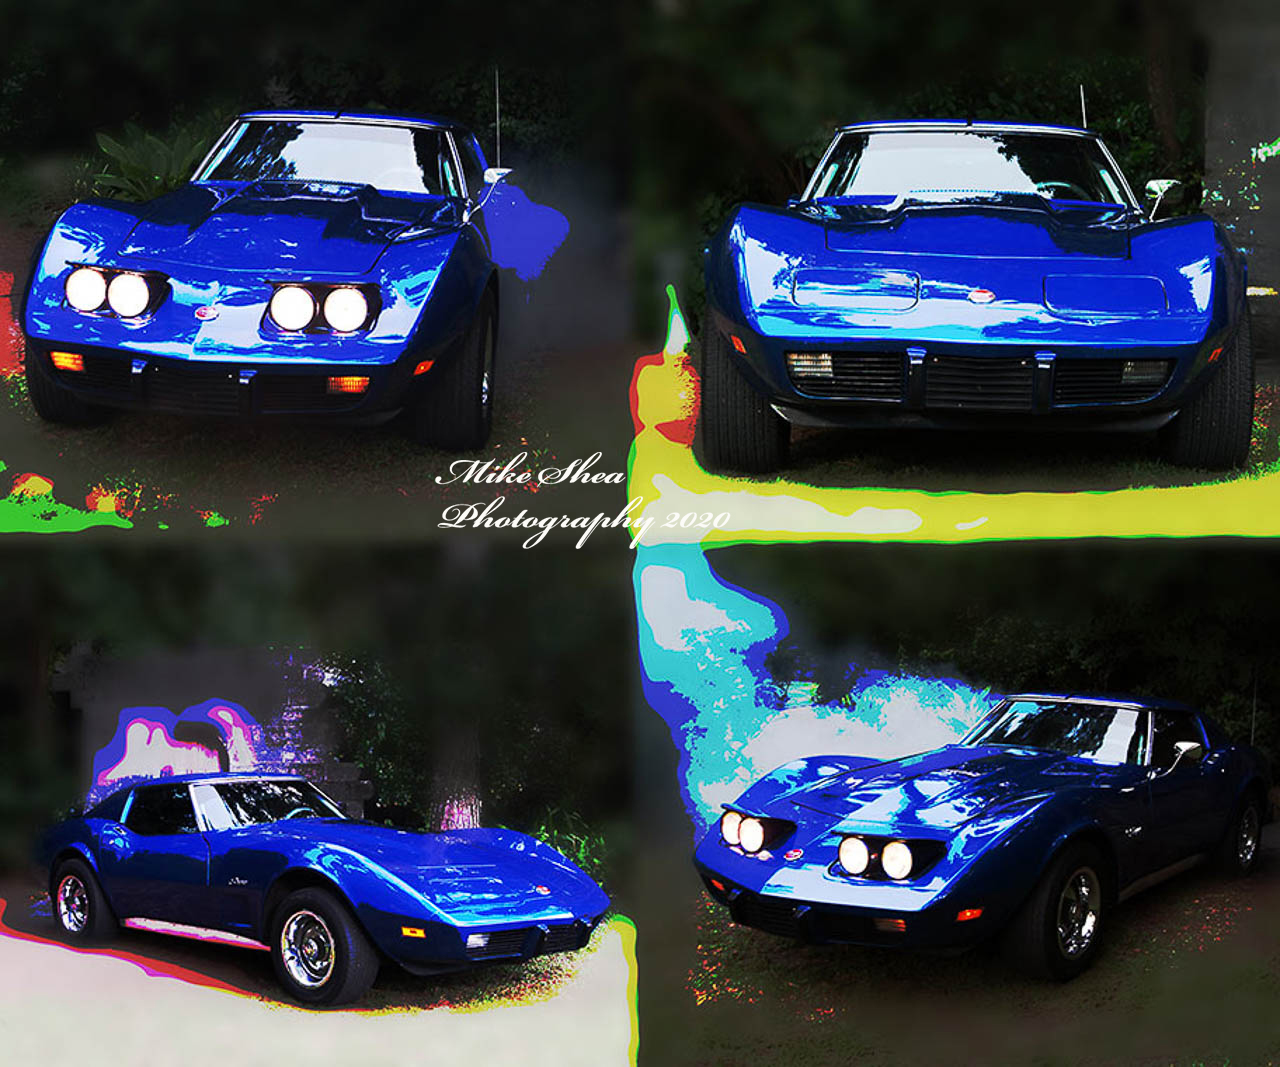 showing the strength and spirit of a blue Corvette named Blue